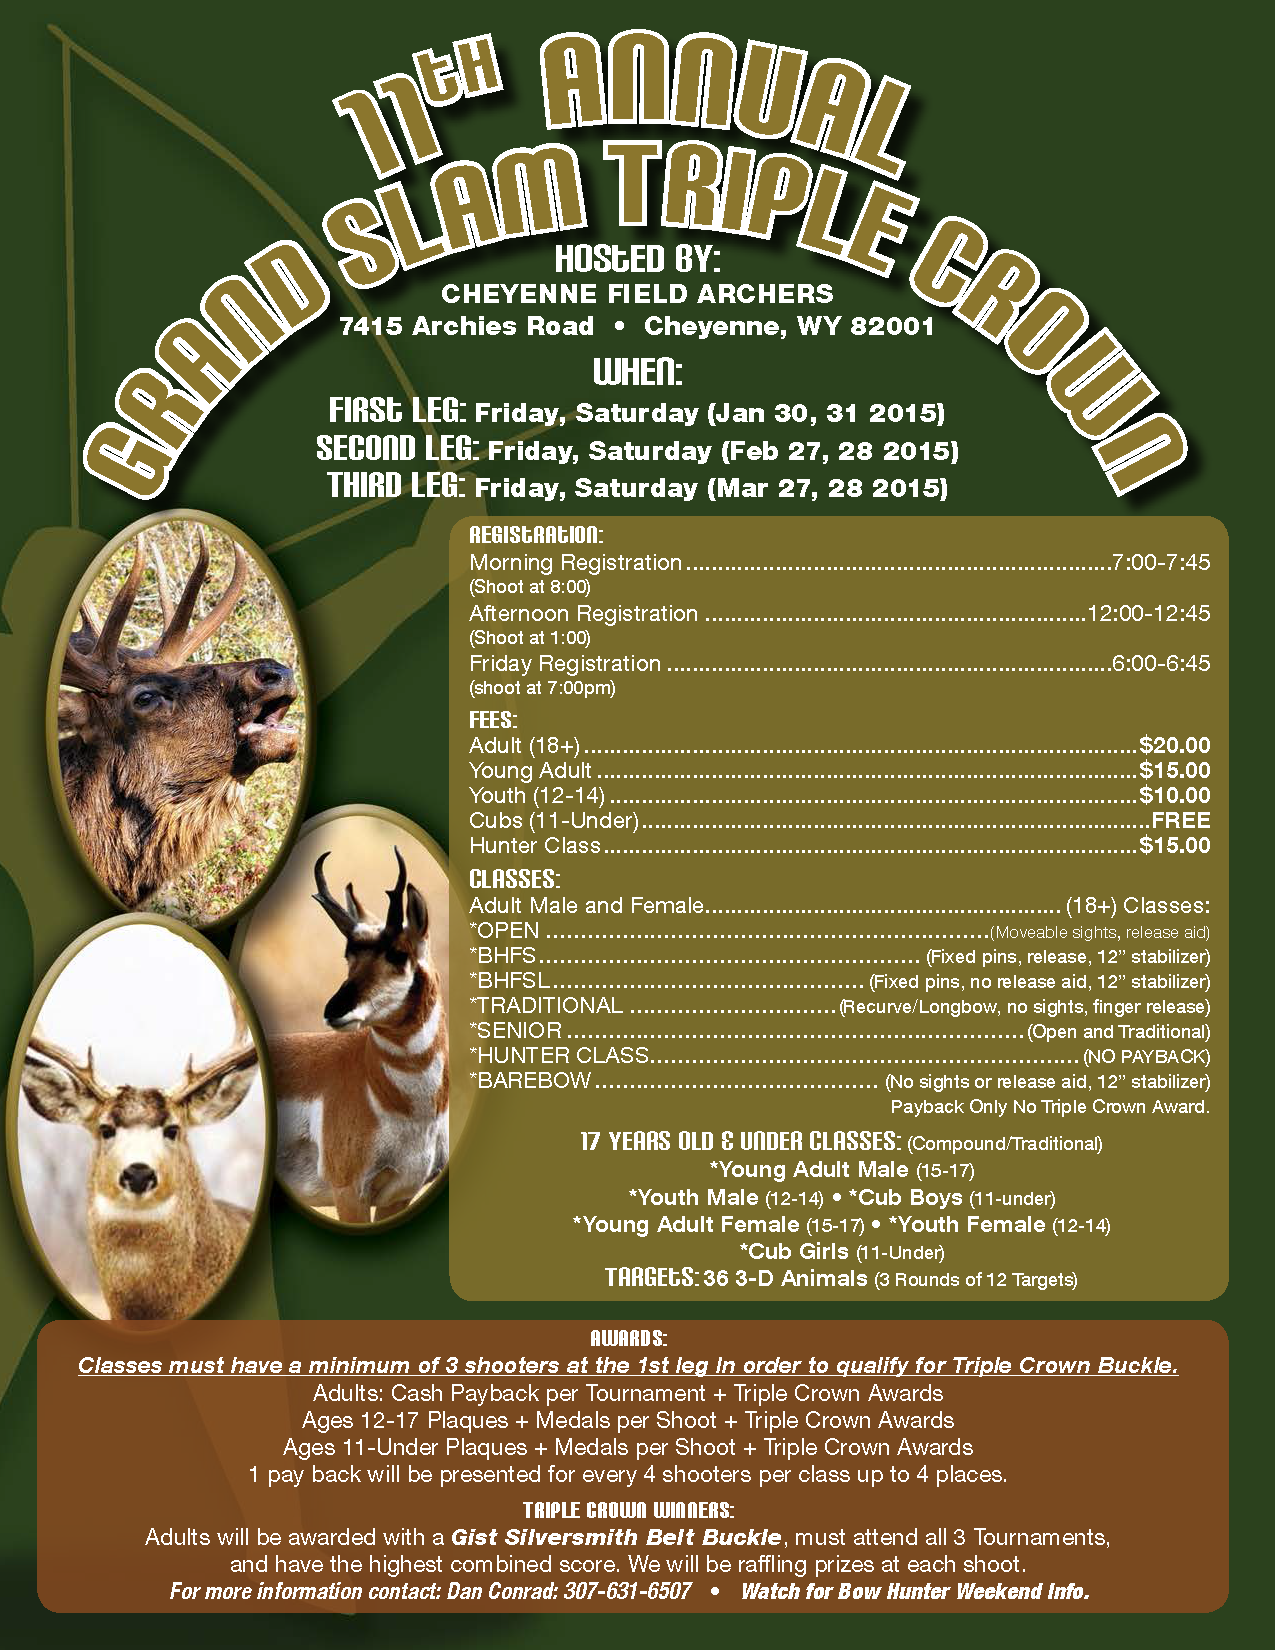 Event of this year s grand slam triple crown event this weekend at